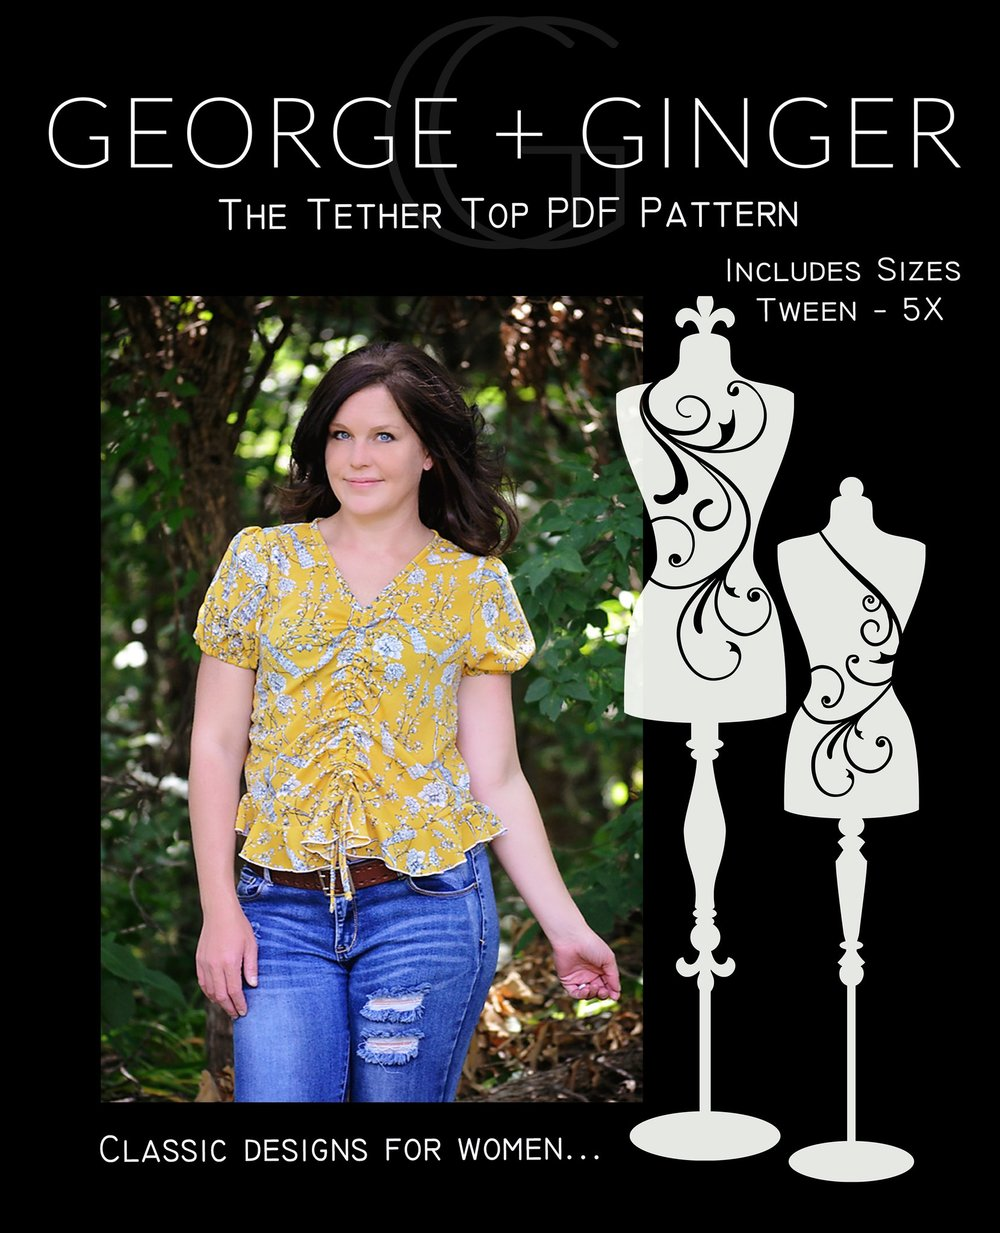 The Tether Top - George + Ginger